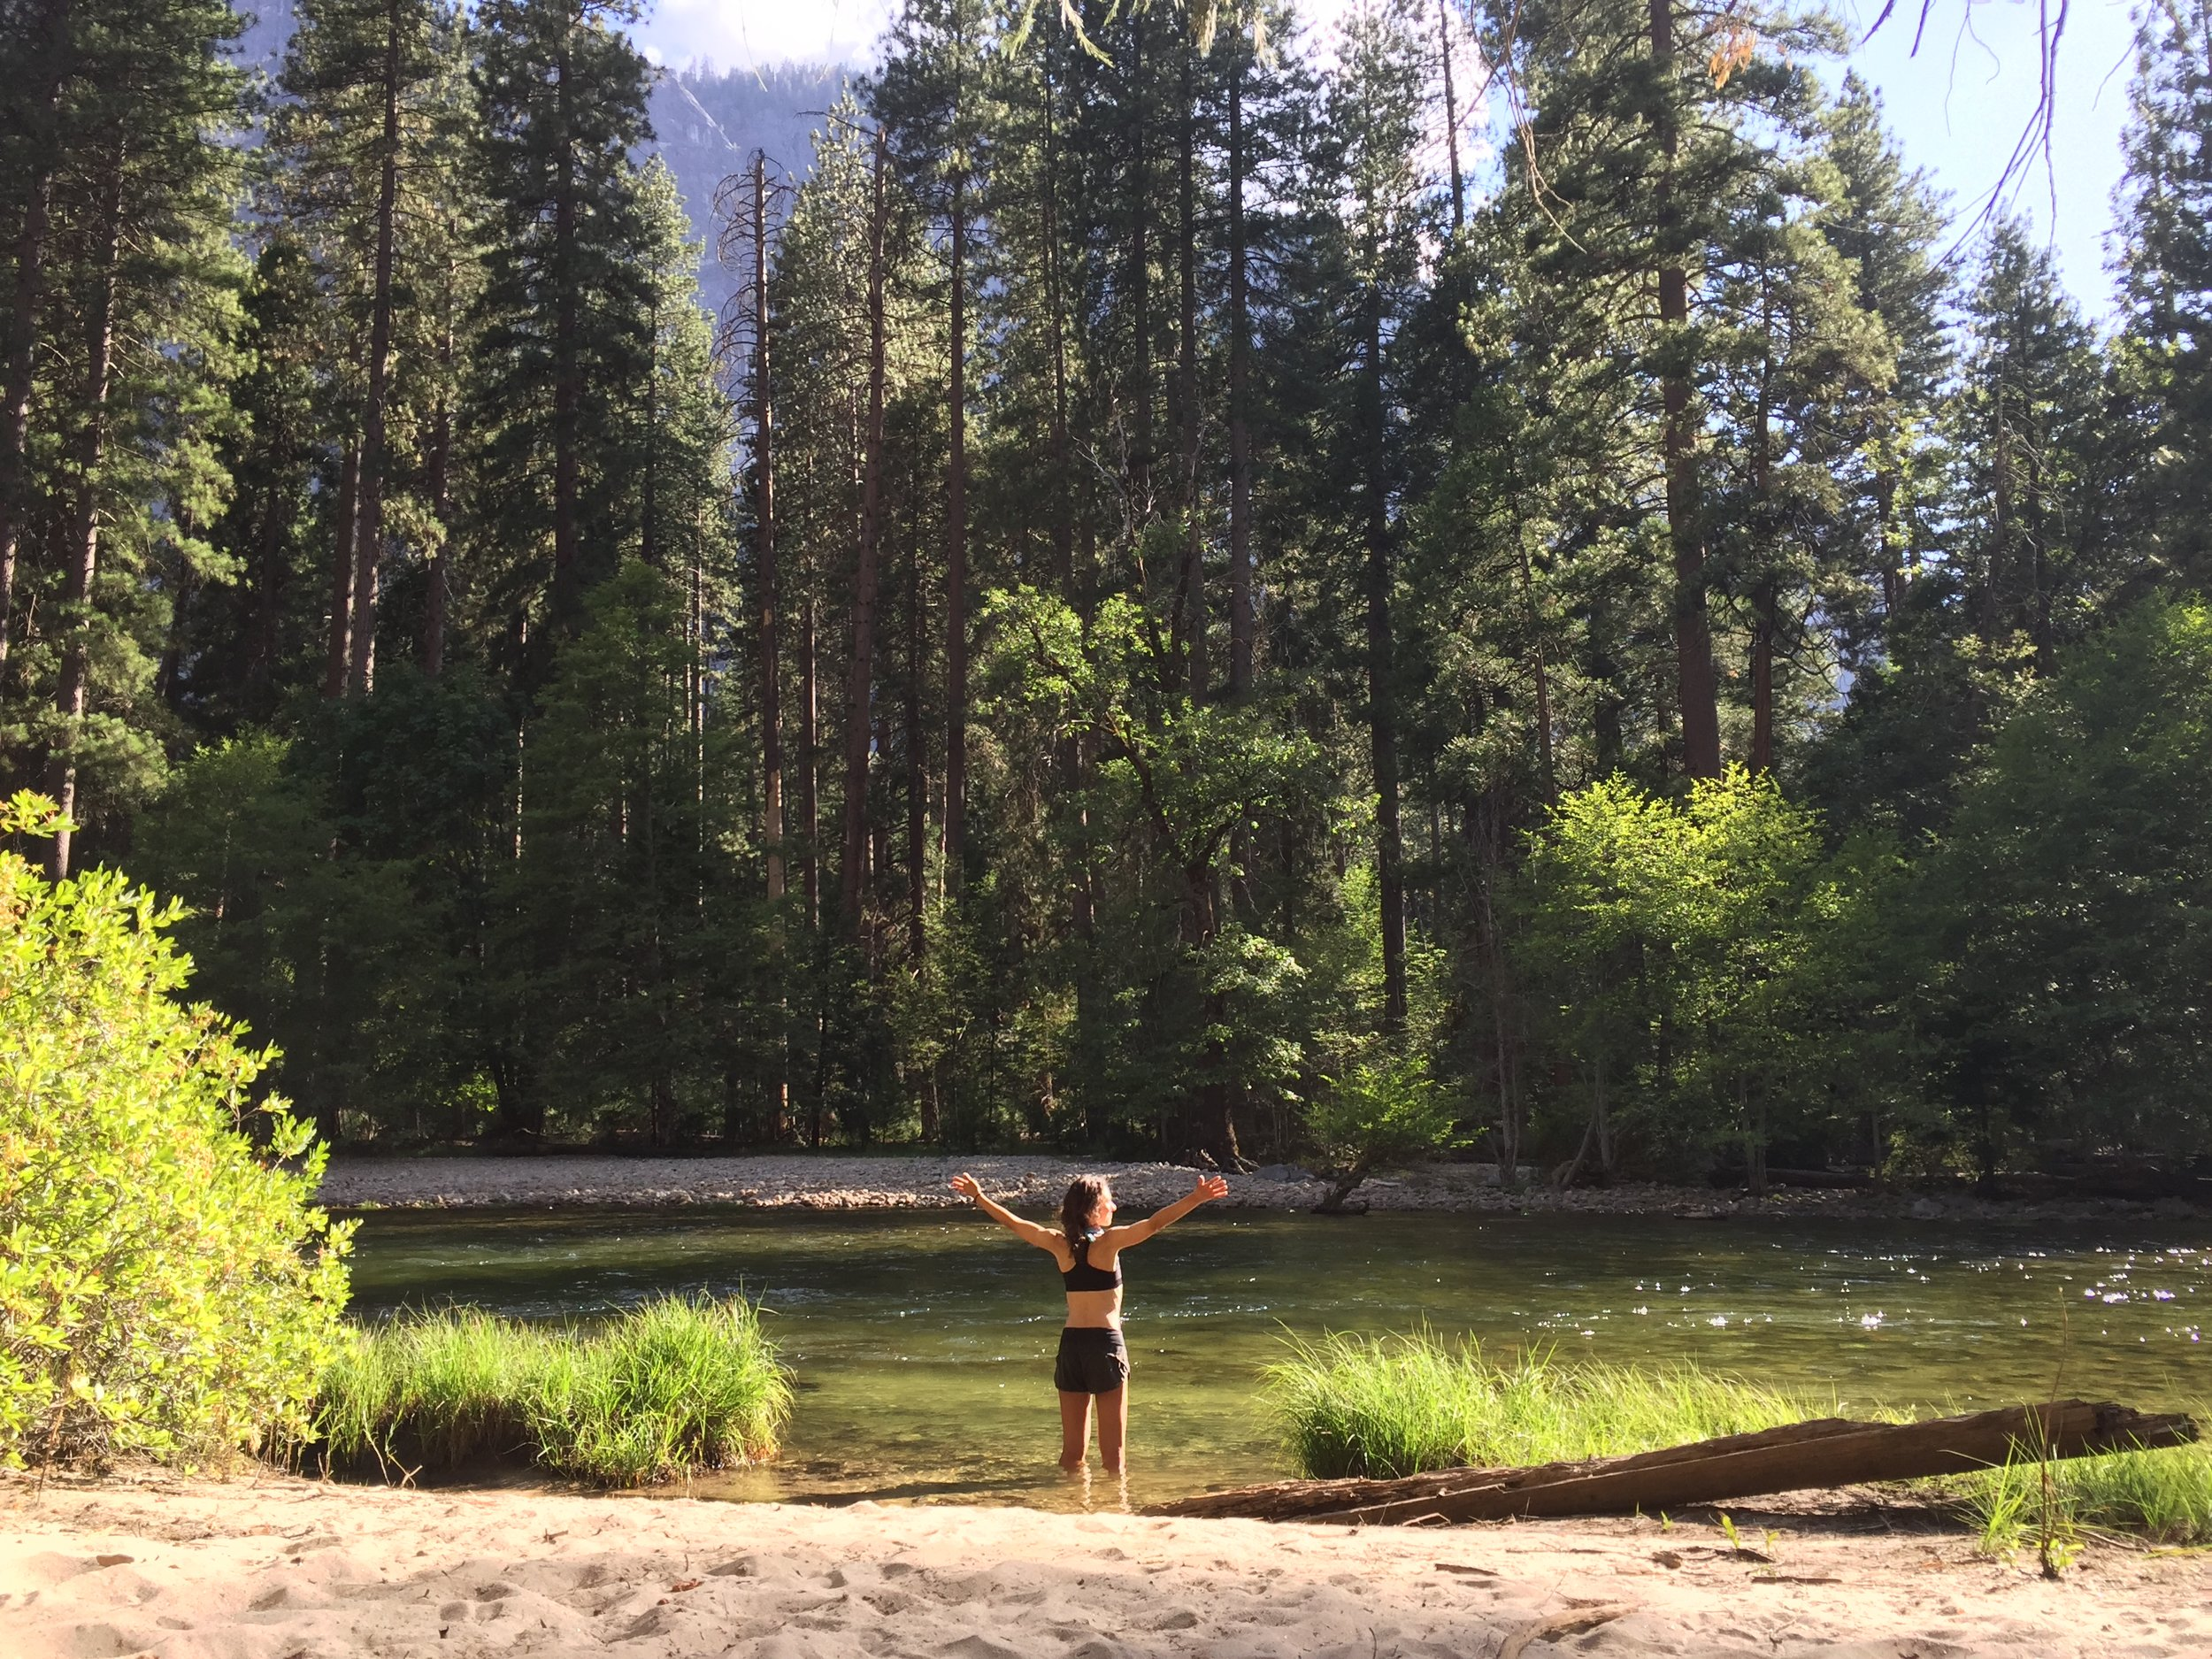 Me at the Merced River